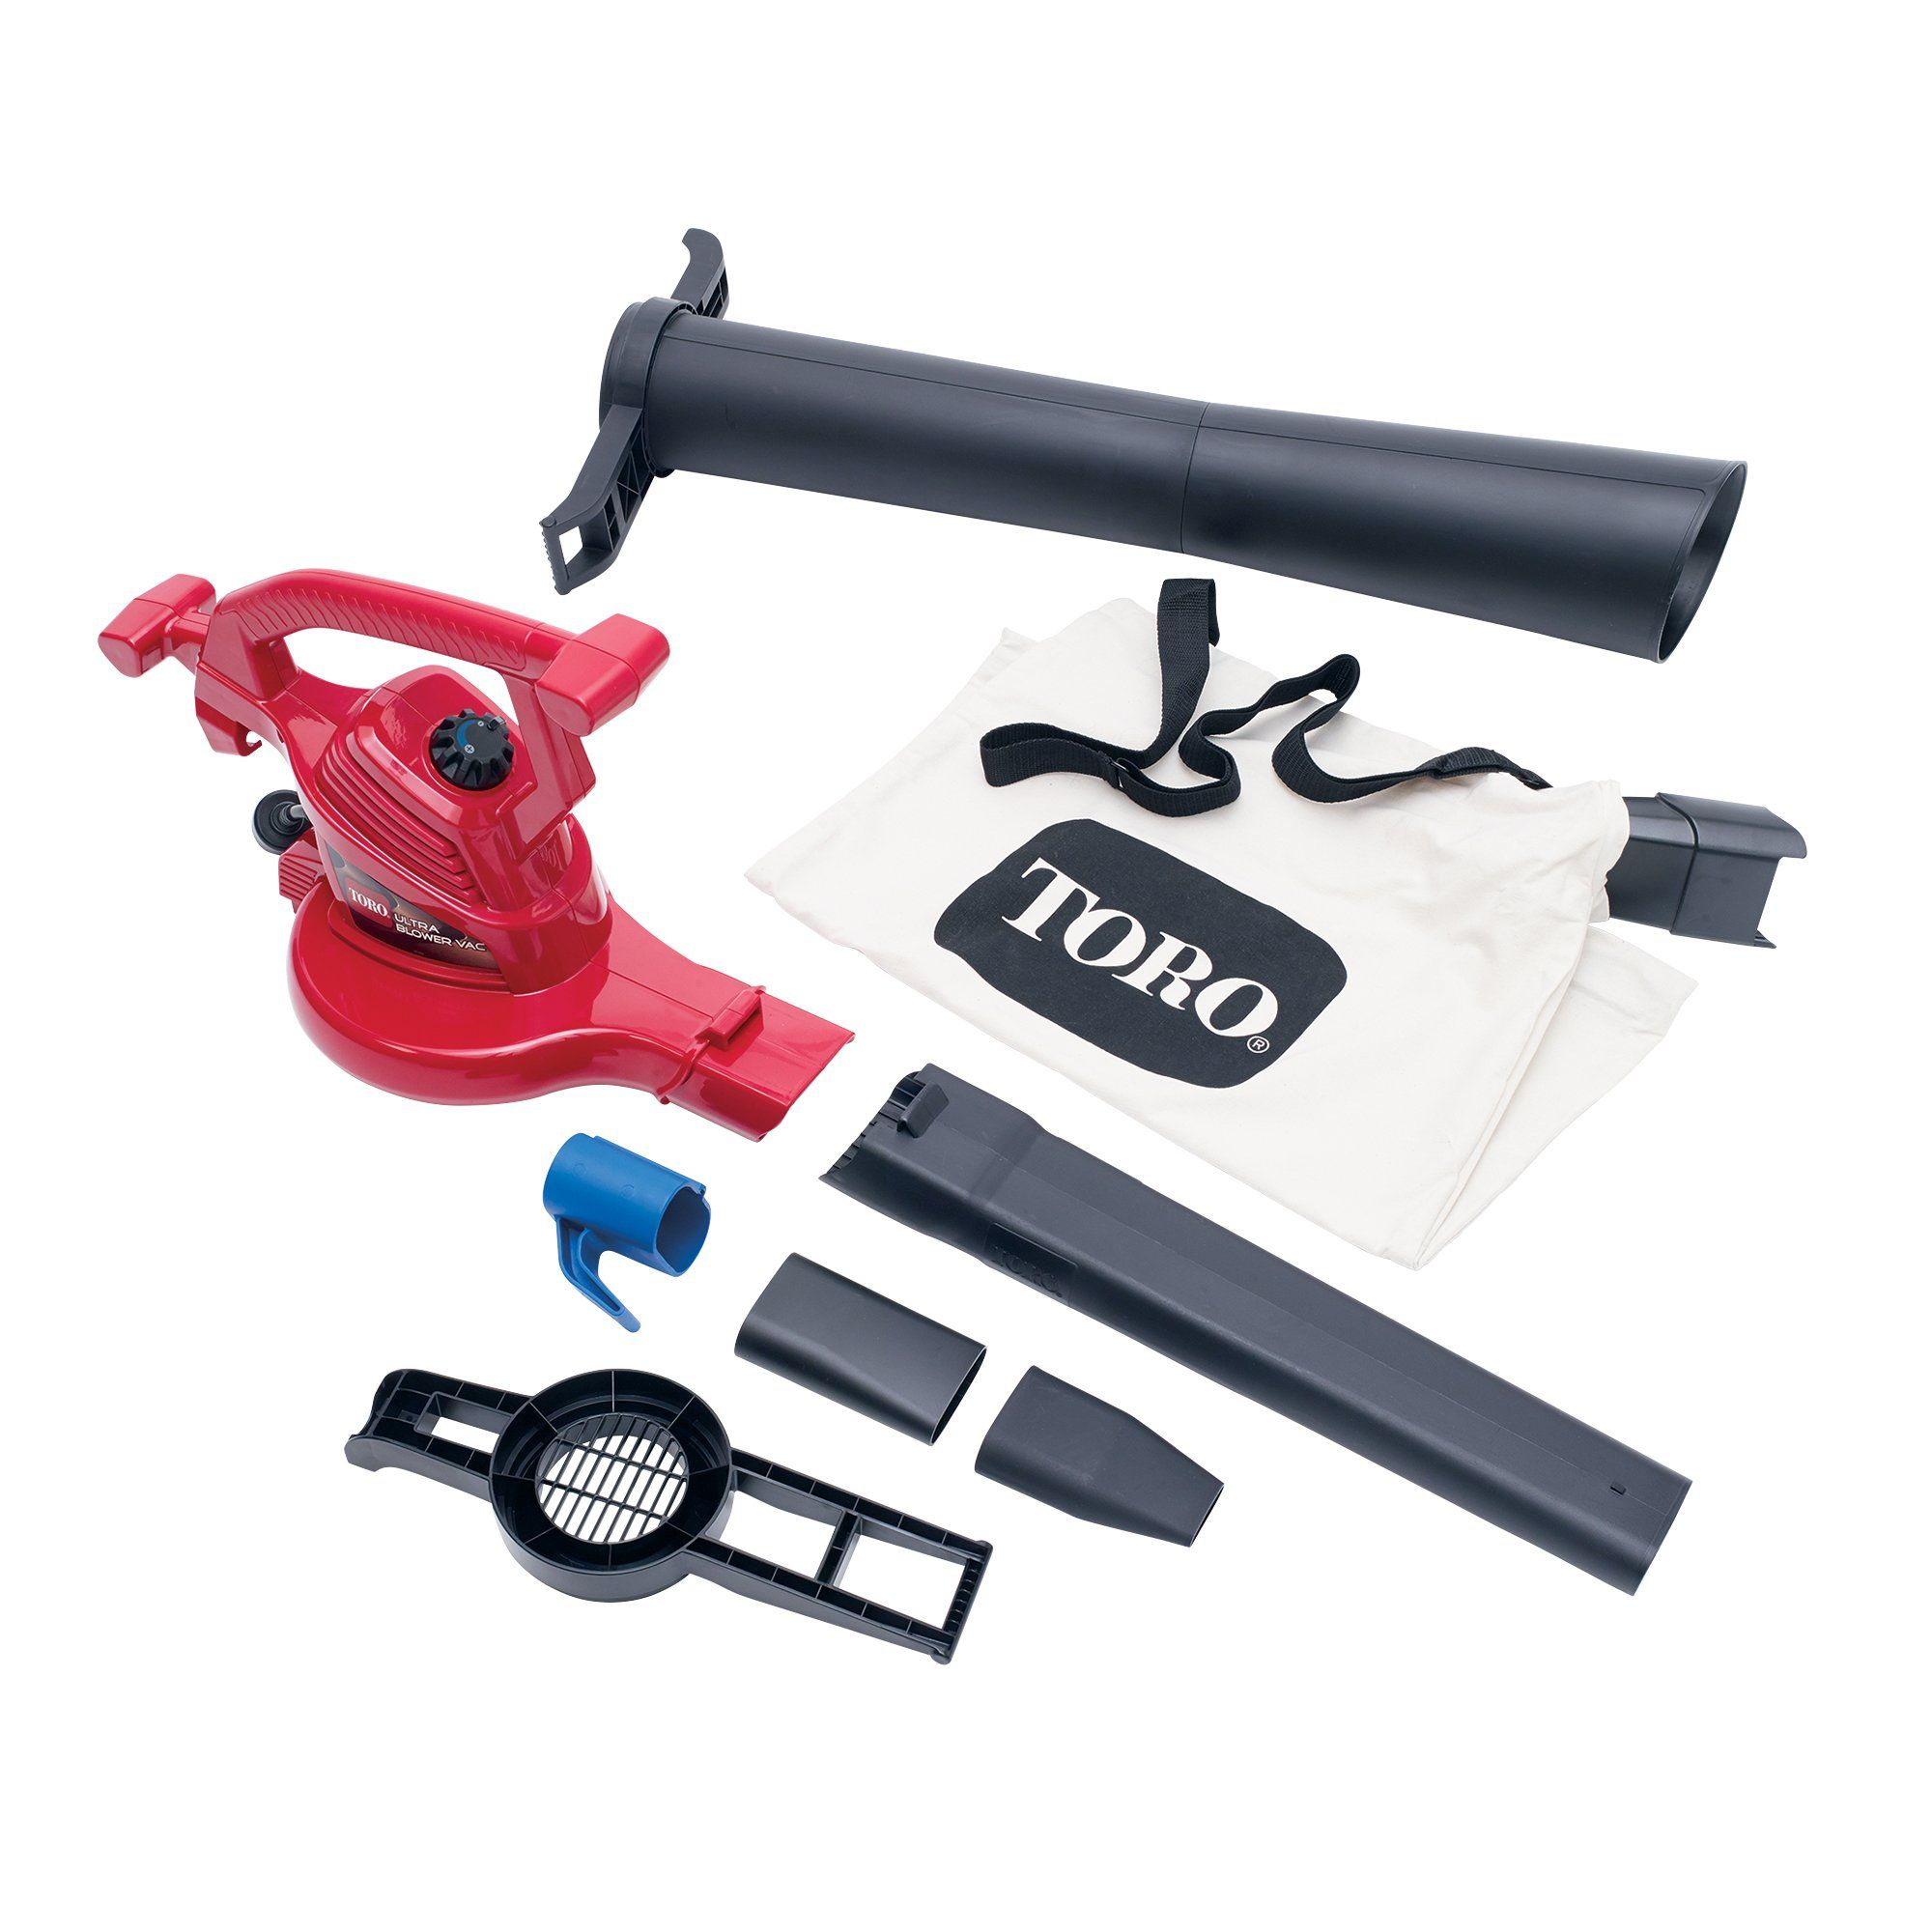 Toro 51619 Ultra Blower Vac Red Corded Read More Reviews Of The Product By Visiting The Link On The Image It Is An Electric Leaf Blowers Blowers Leaf Blower